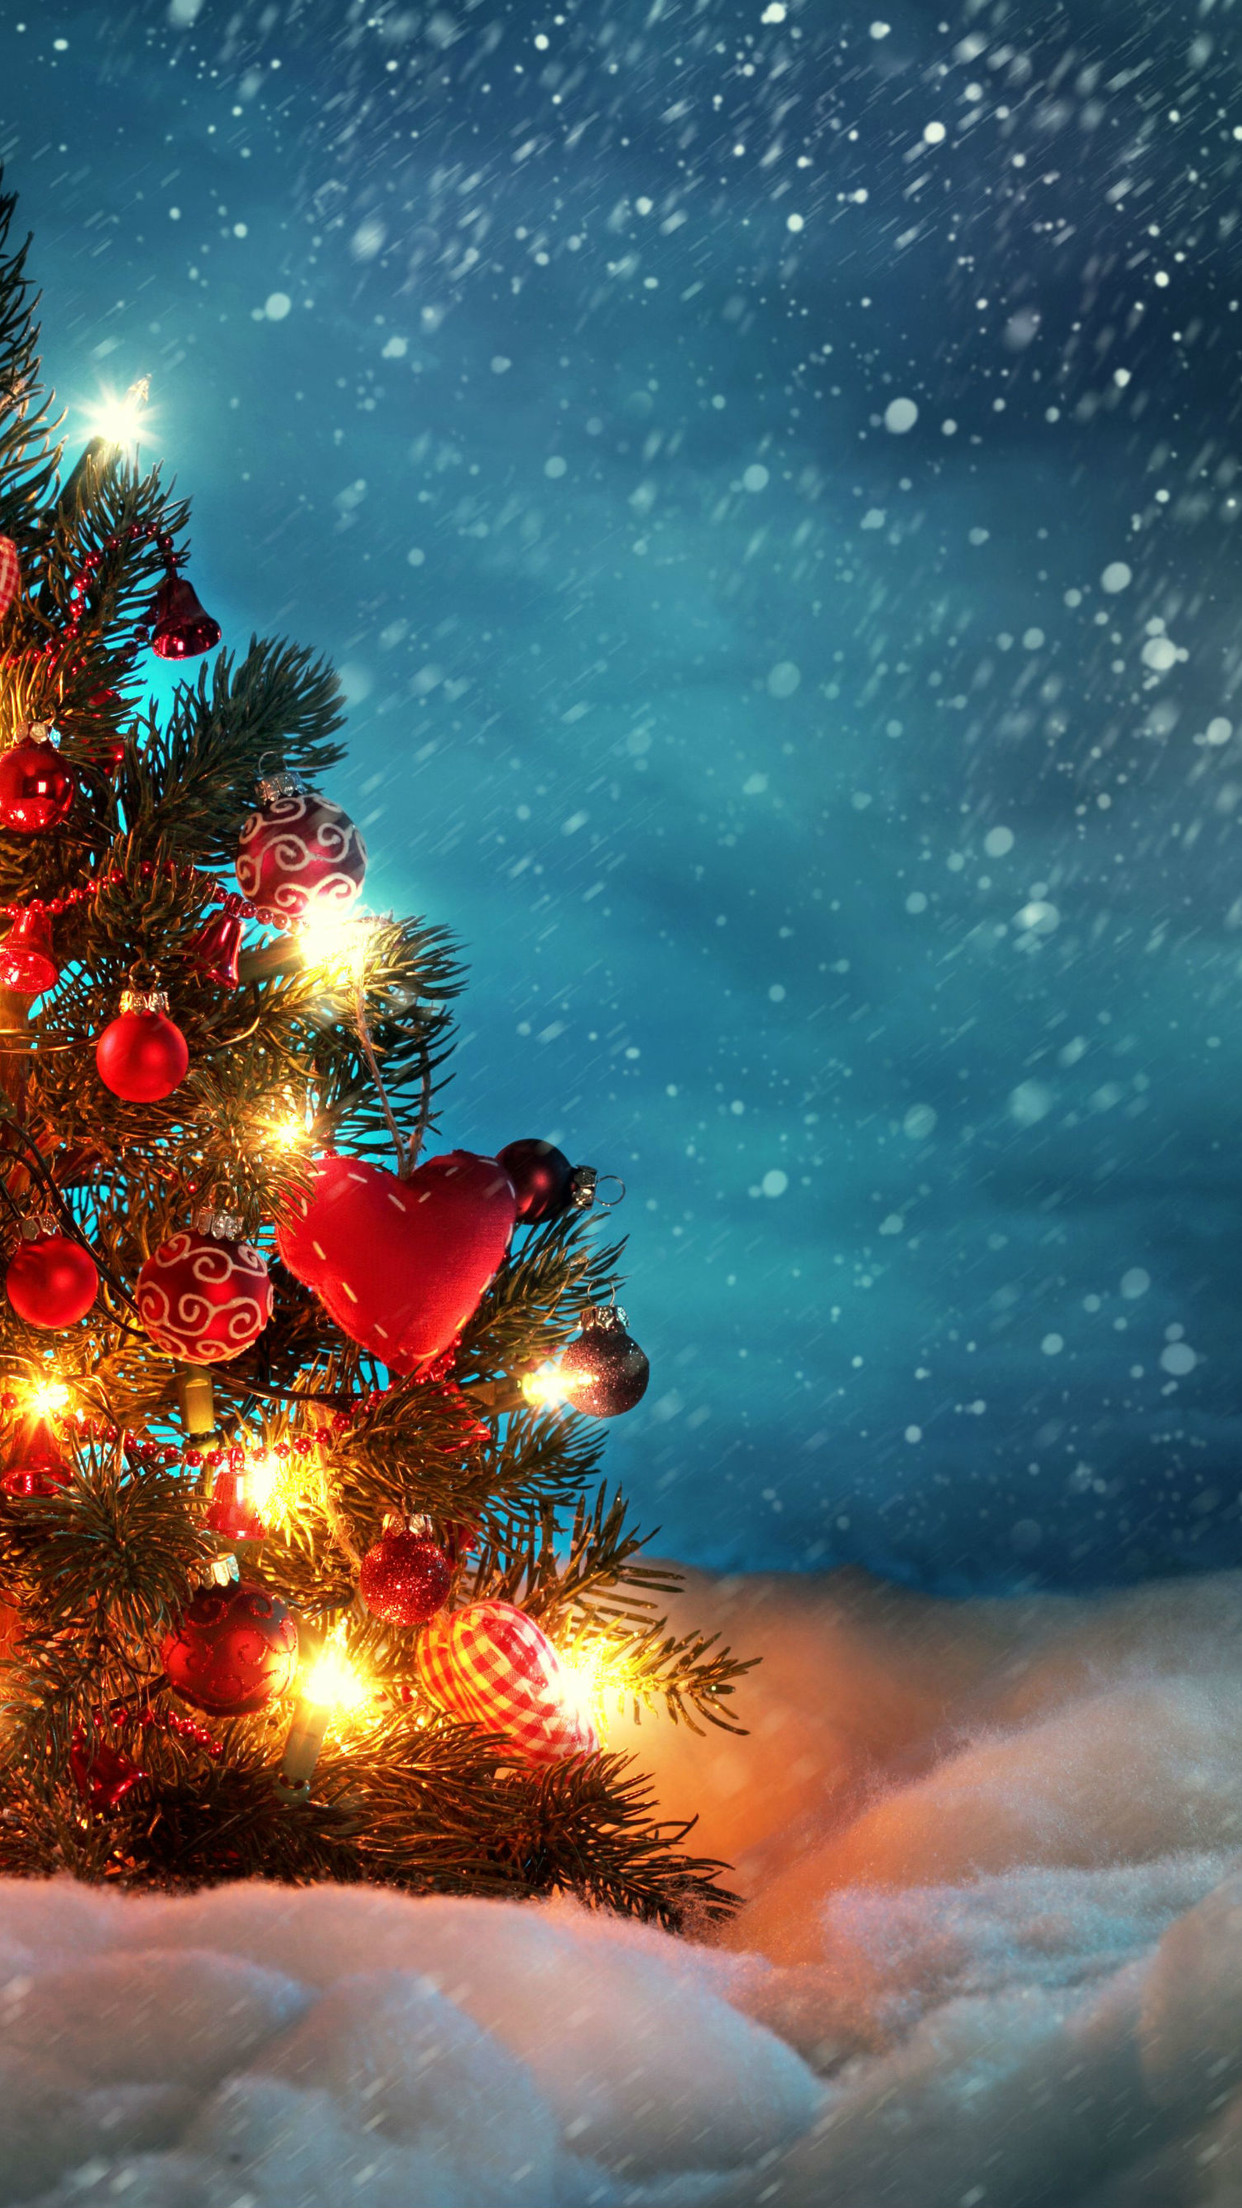 Little-Christmas-tree-in-the-snow-HD-wallpaper_1242x2208